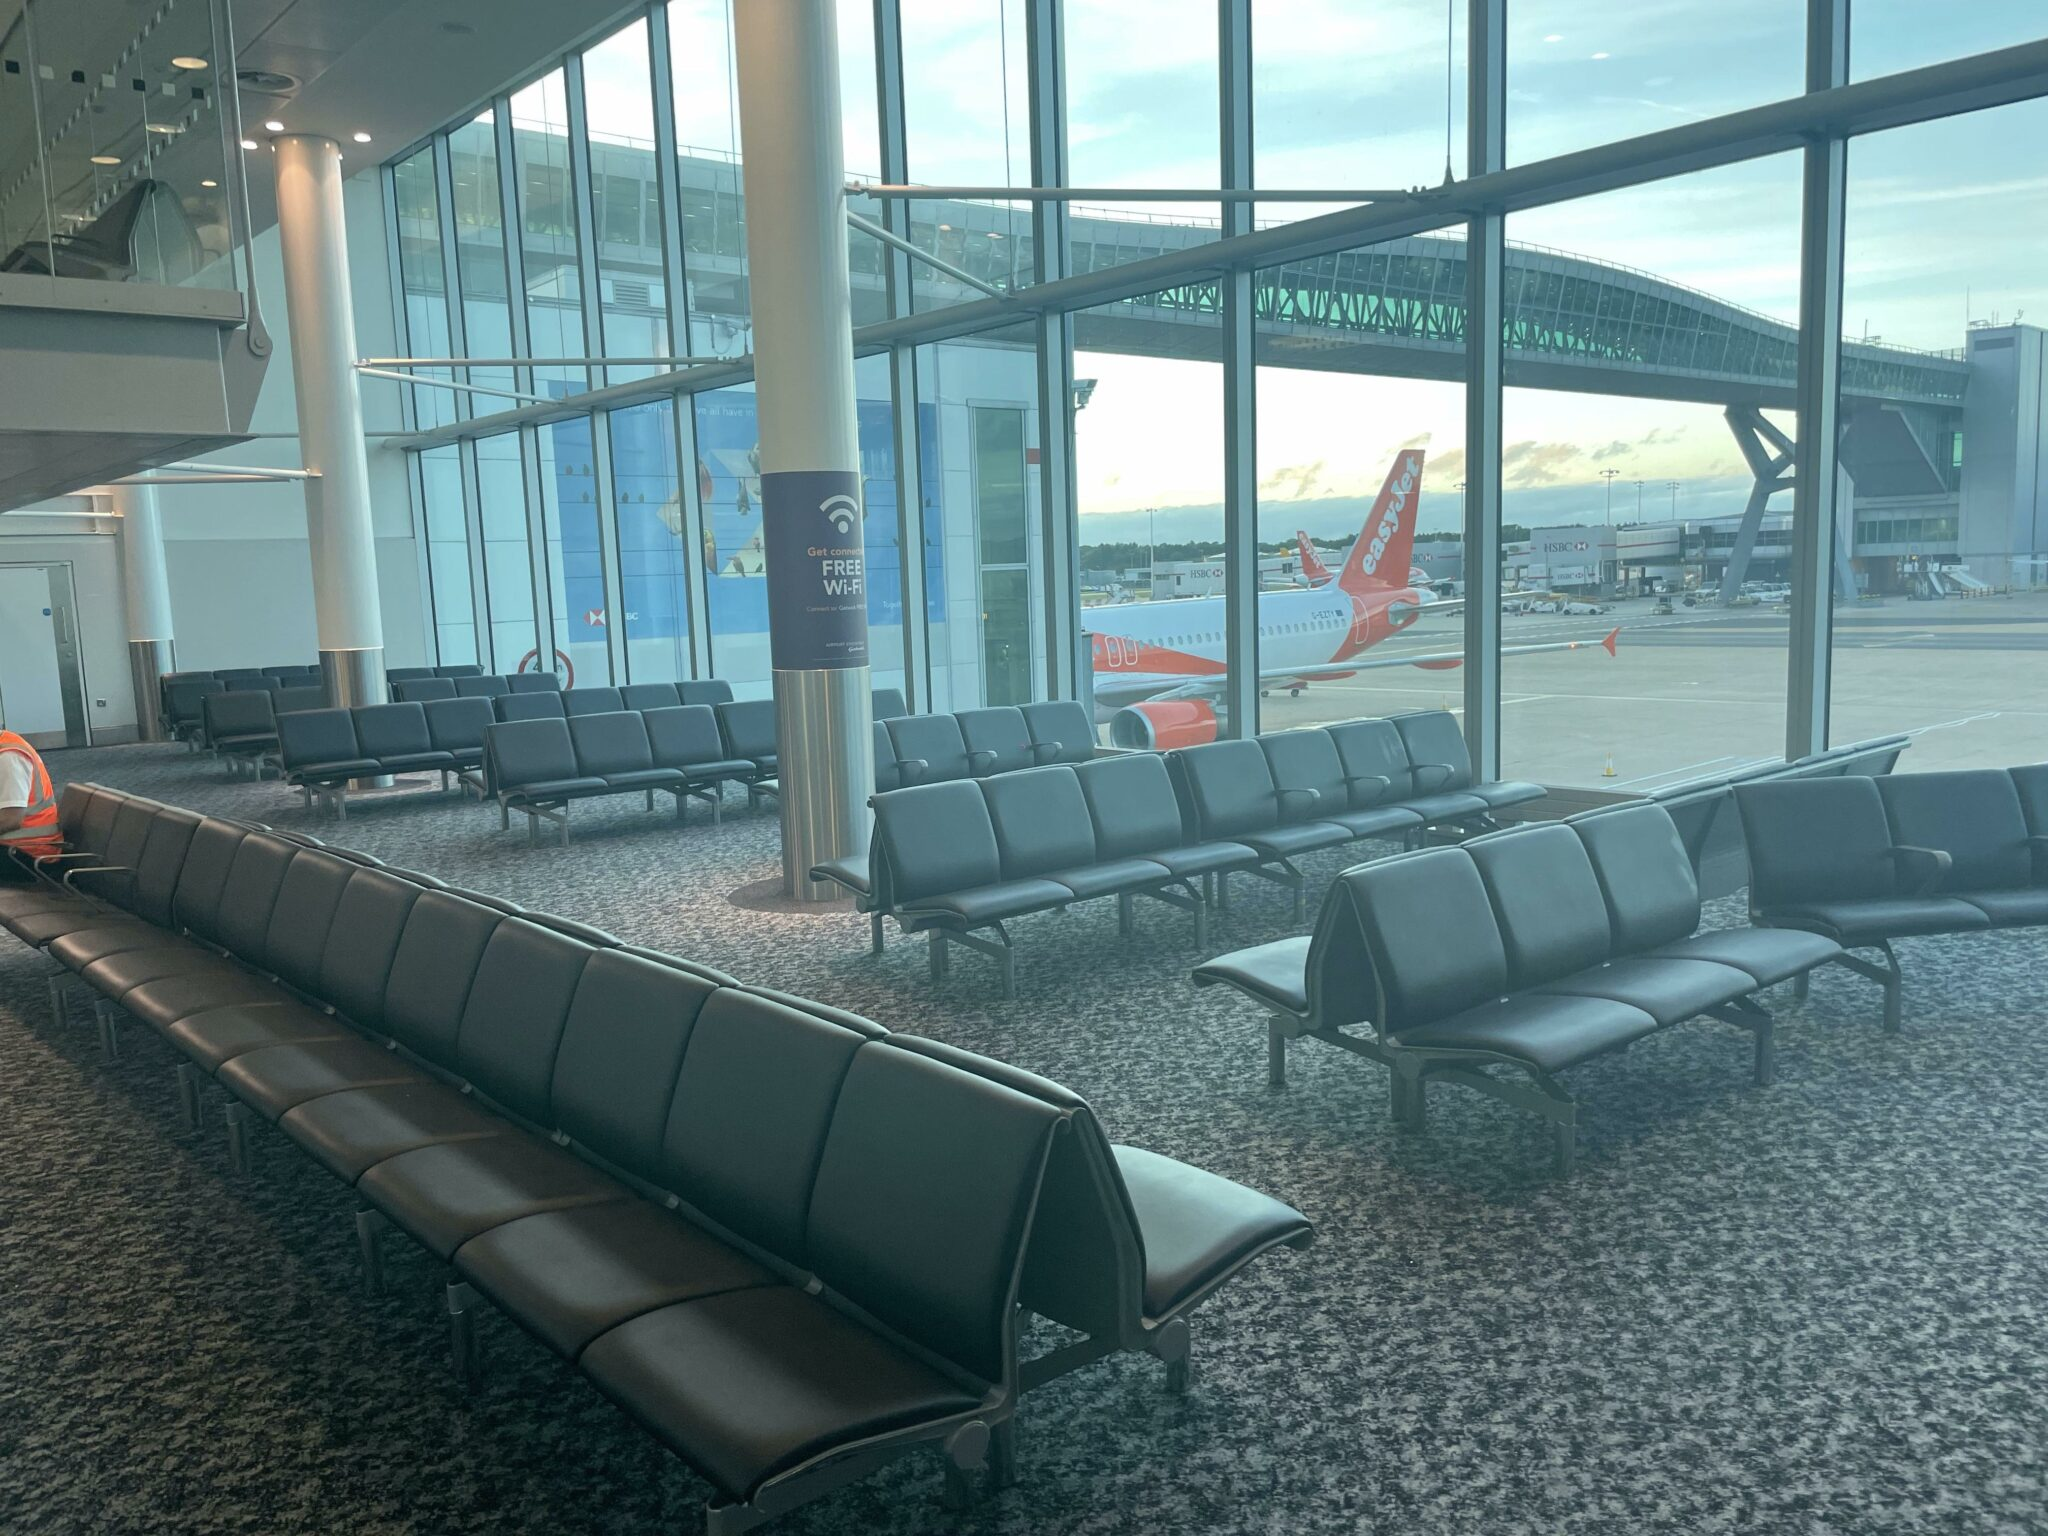 Empty gate area at London Gatwick Airport. The tail of an easyJet aircraft is visible out the window.